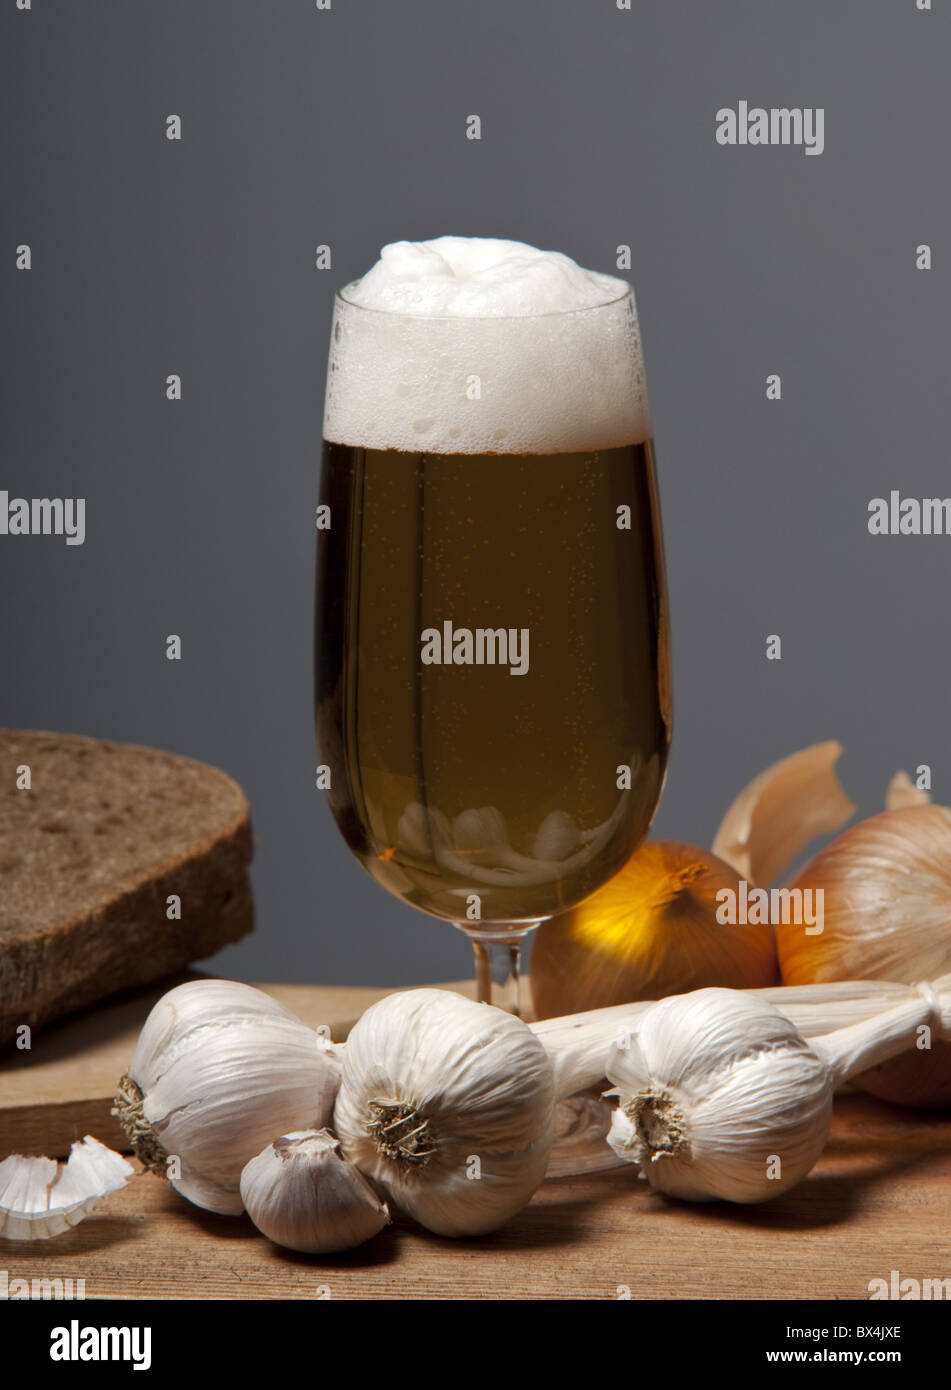 glass of beer with garlic - Stock Image